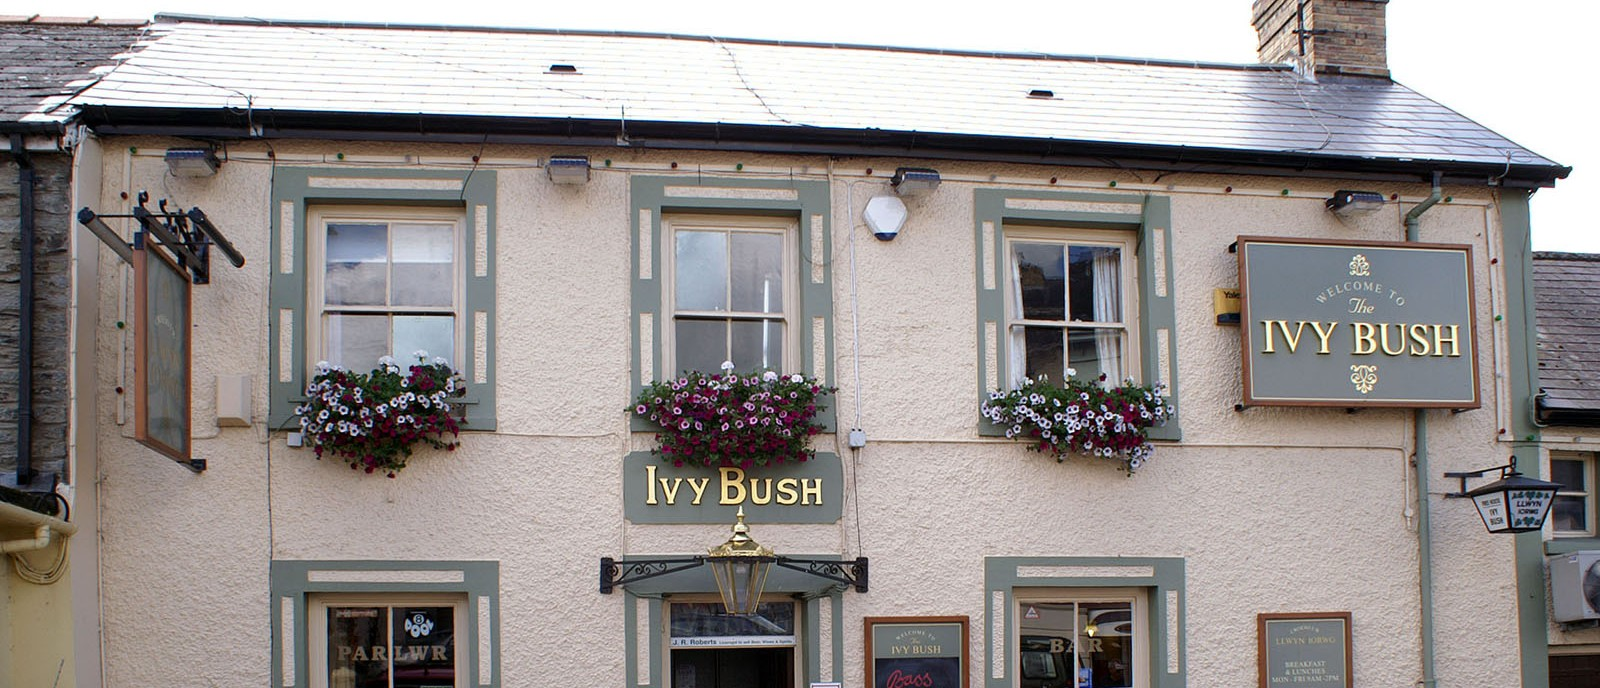 Ivy Bush Newcastle Emlyn